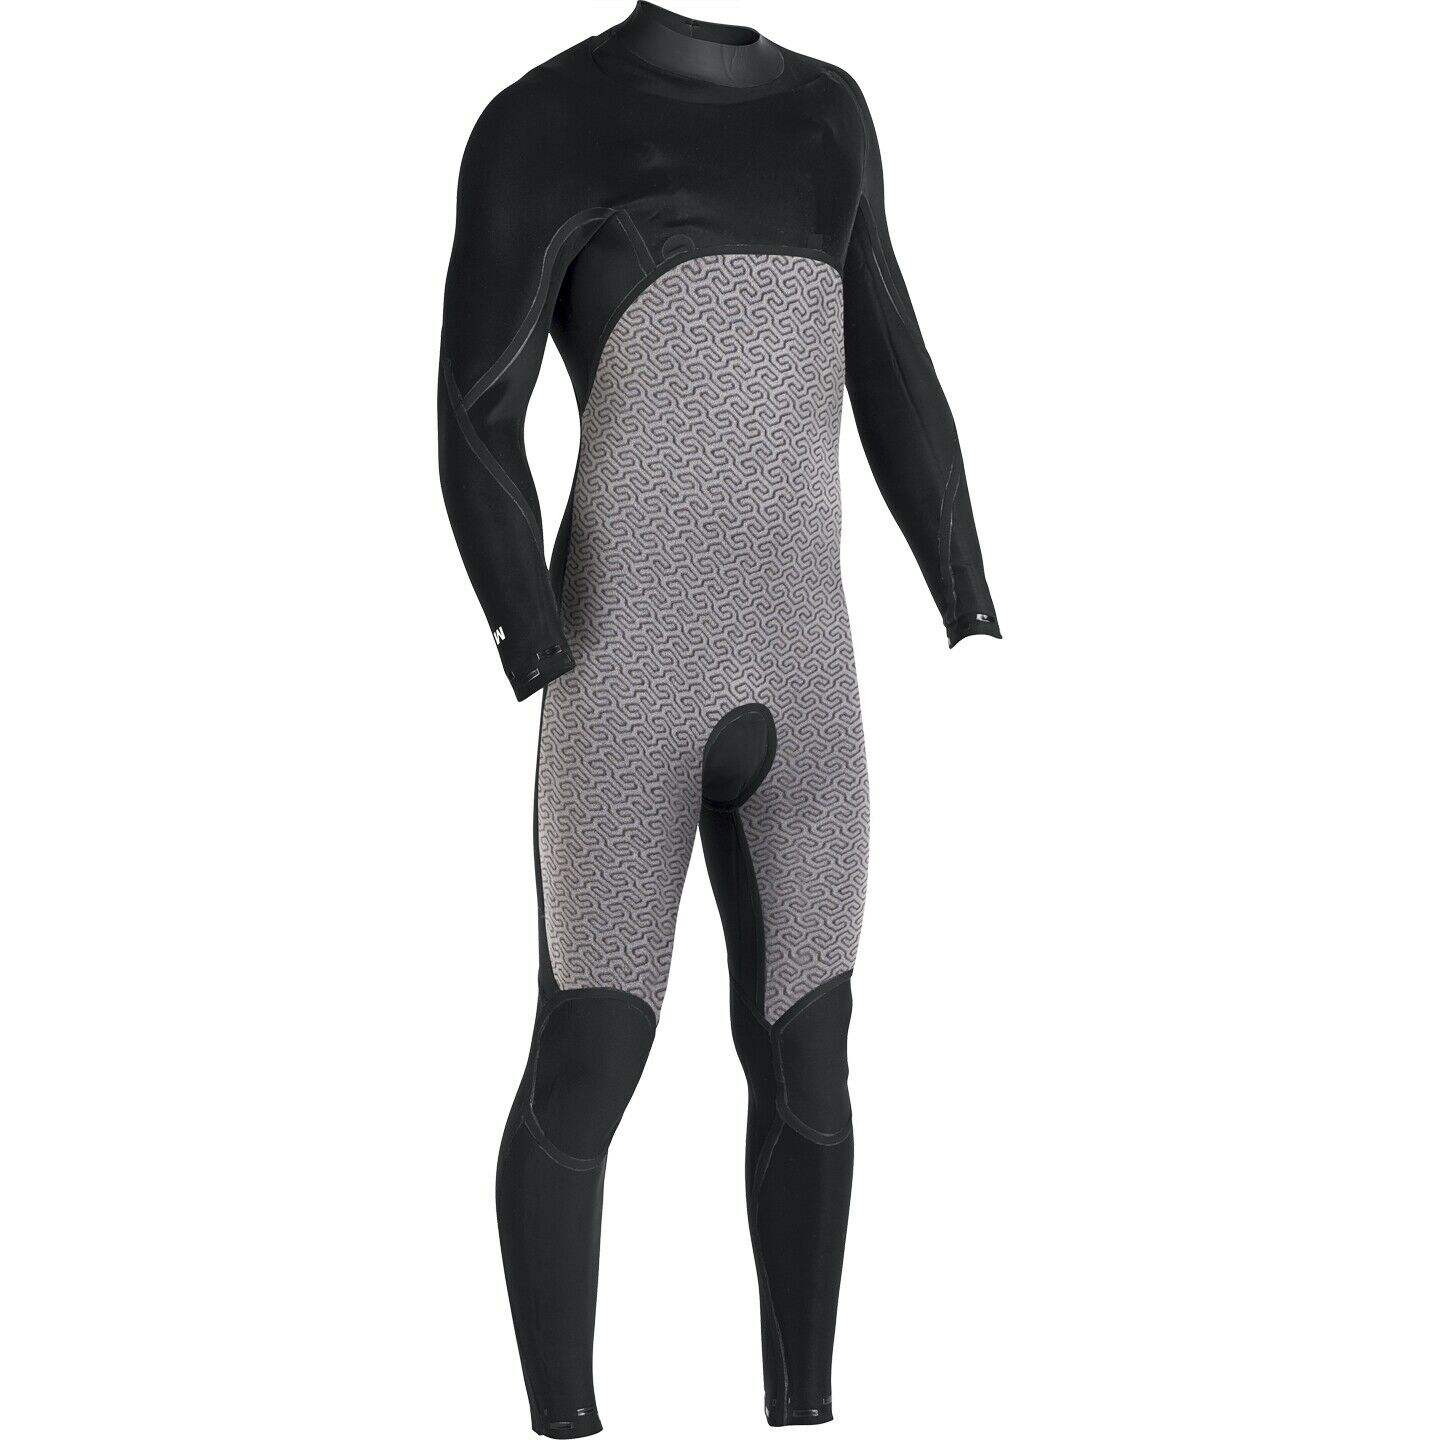 Women Wetsuit Lycra Diving Suit Full Body Swimwear Surfing Suit